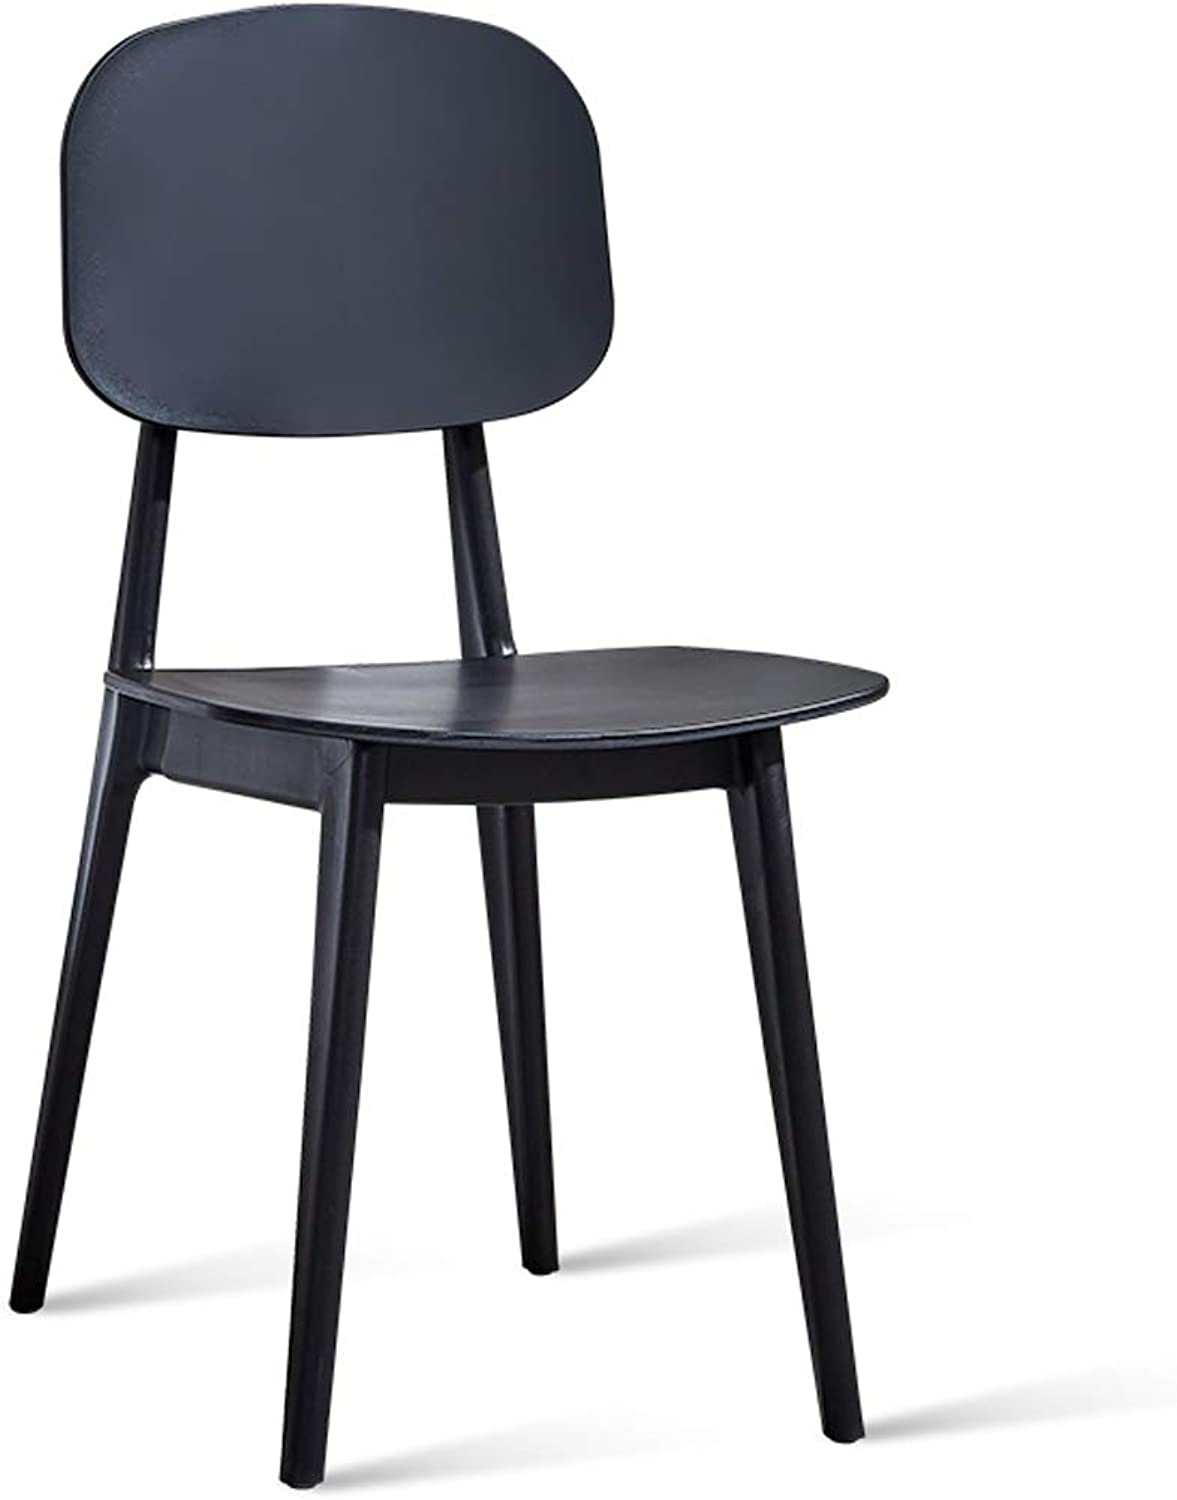 LRW Modern Nordic Dining Chair, Adult Back Chair, Dining Room Stool, Desk Chair, Plastic Leisure Chair, Black